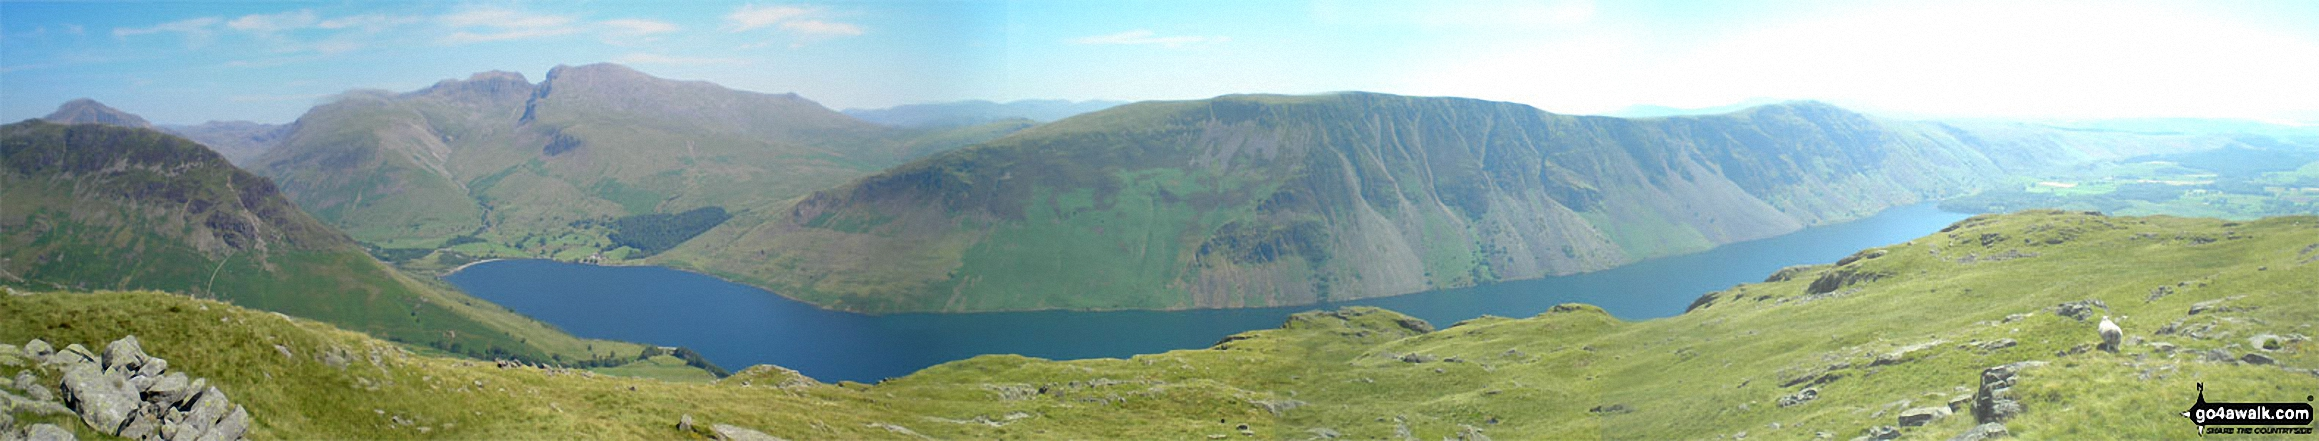 Yewbarrow, Wasdale Head, Wast Water, Lingmell, Scafell Pike, Mickledore and Sca Fell, Illgill Head and Whin Rigg from below Middle Fell (Wasdale)